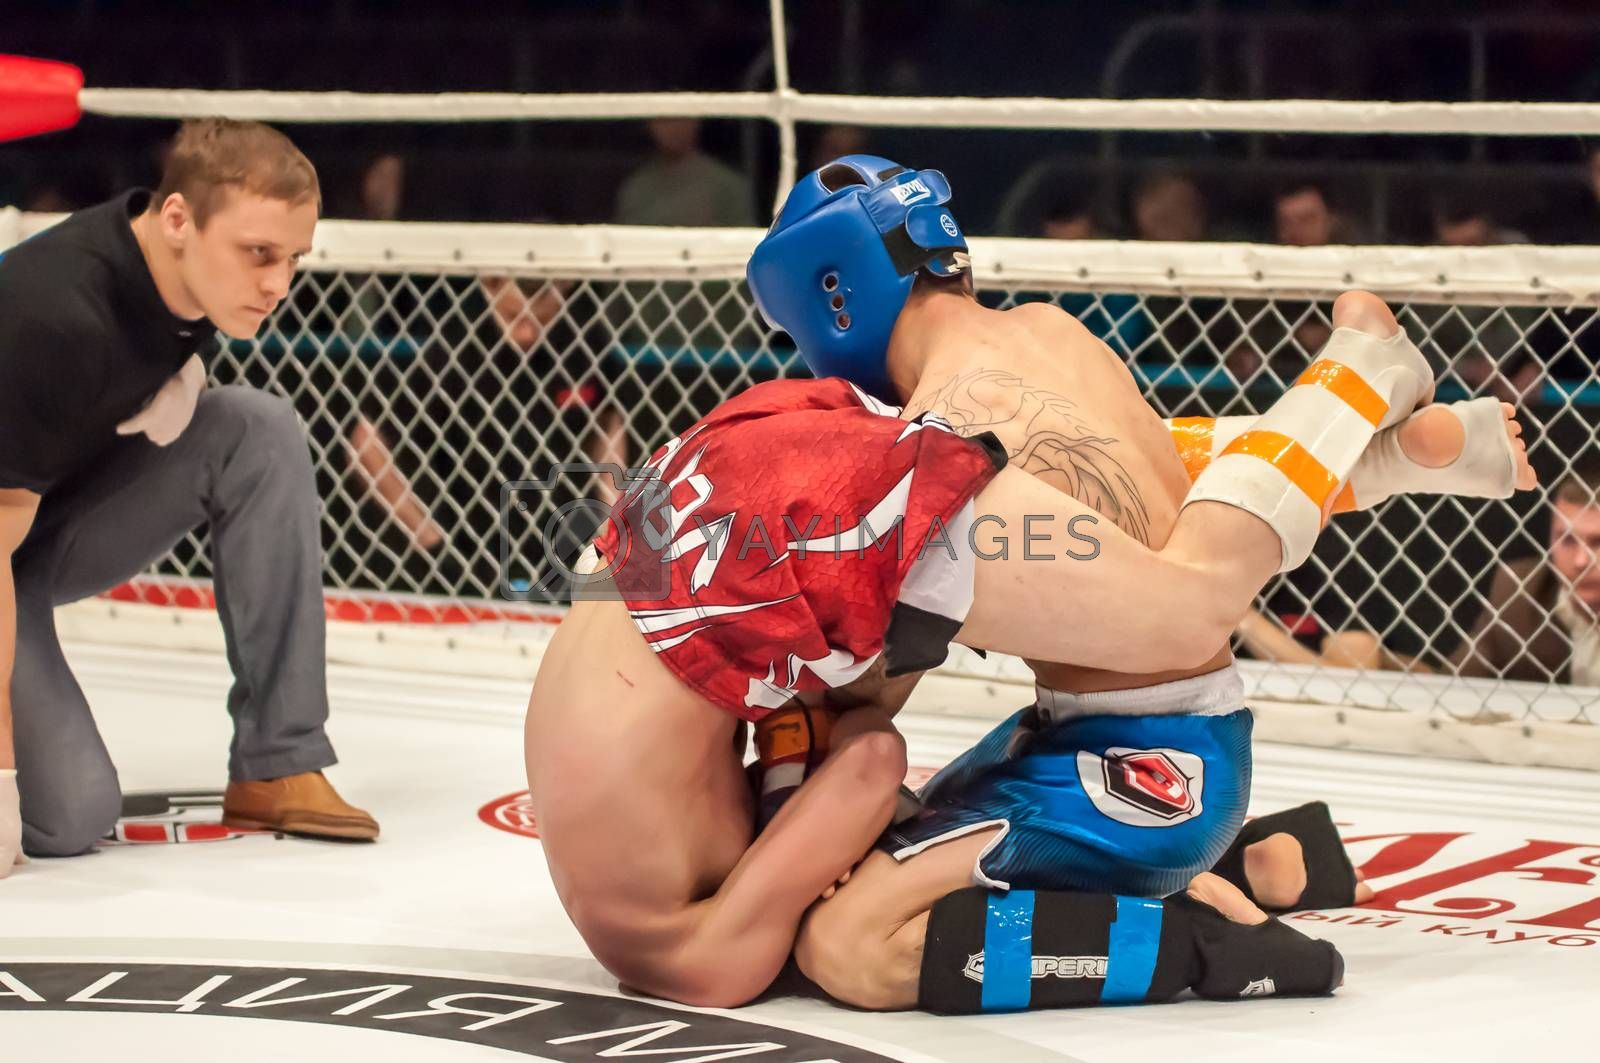 Royalty free image of Match two MMA fighters by 0608195706081957